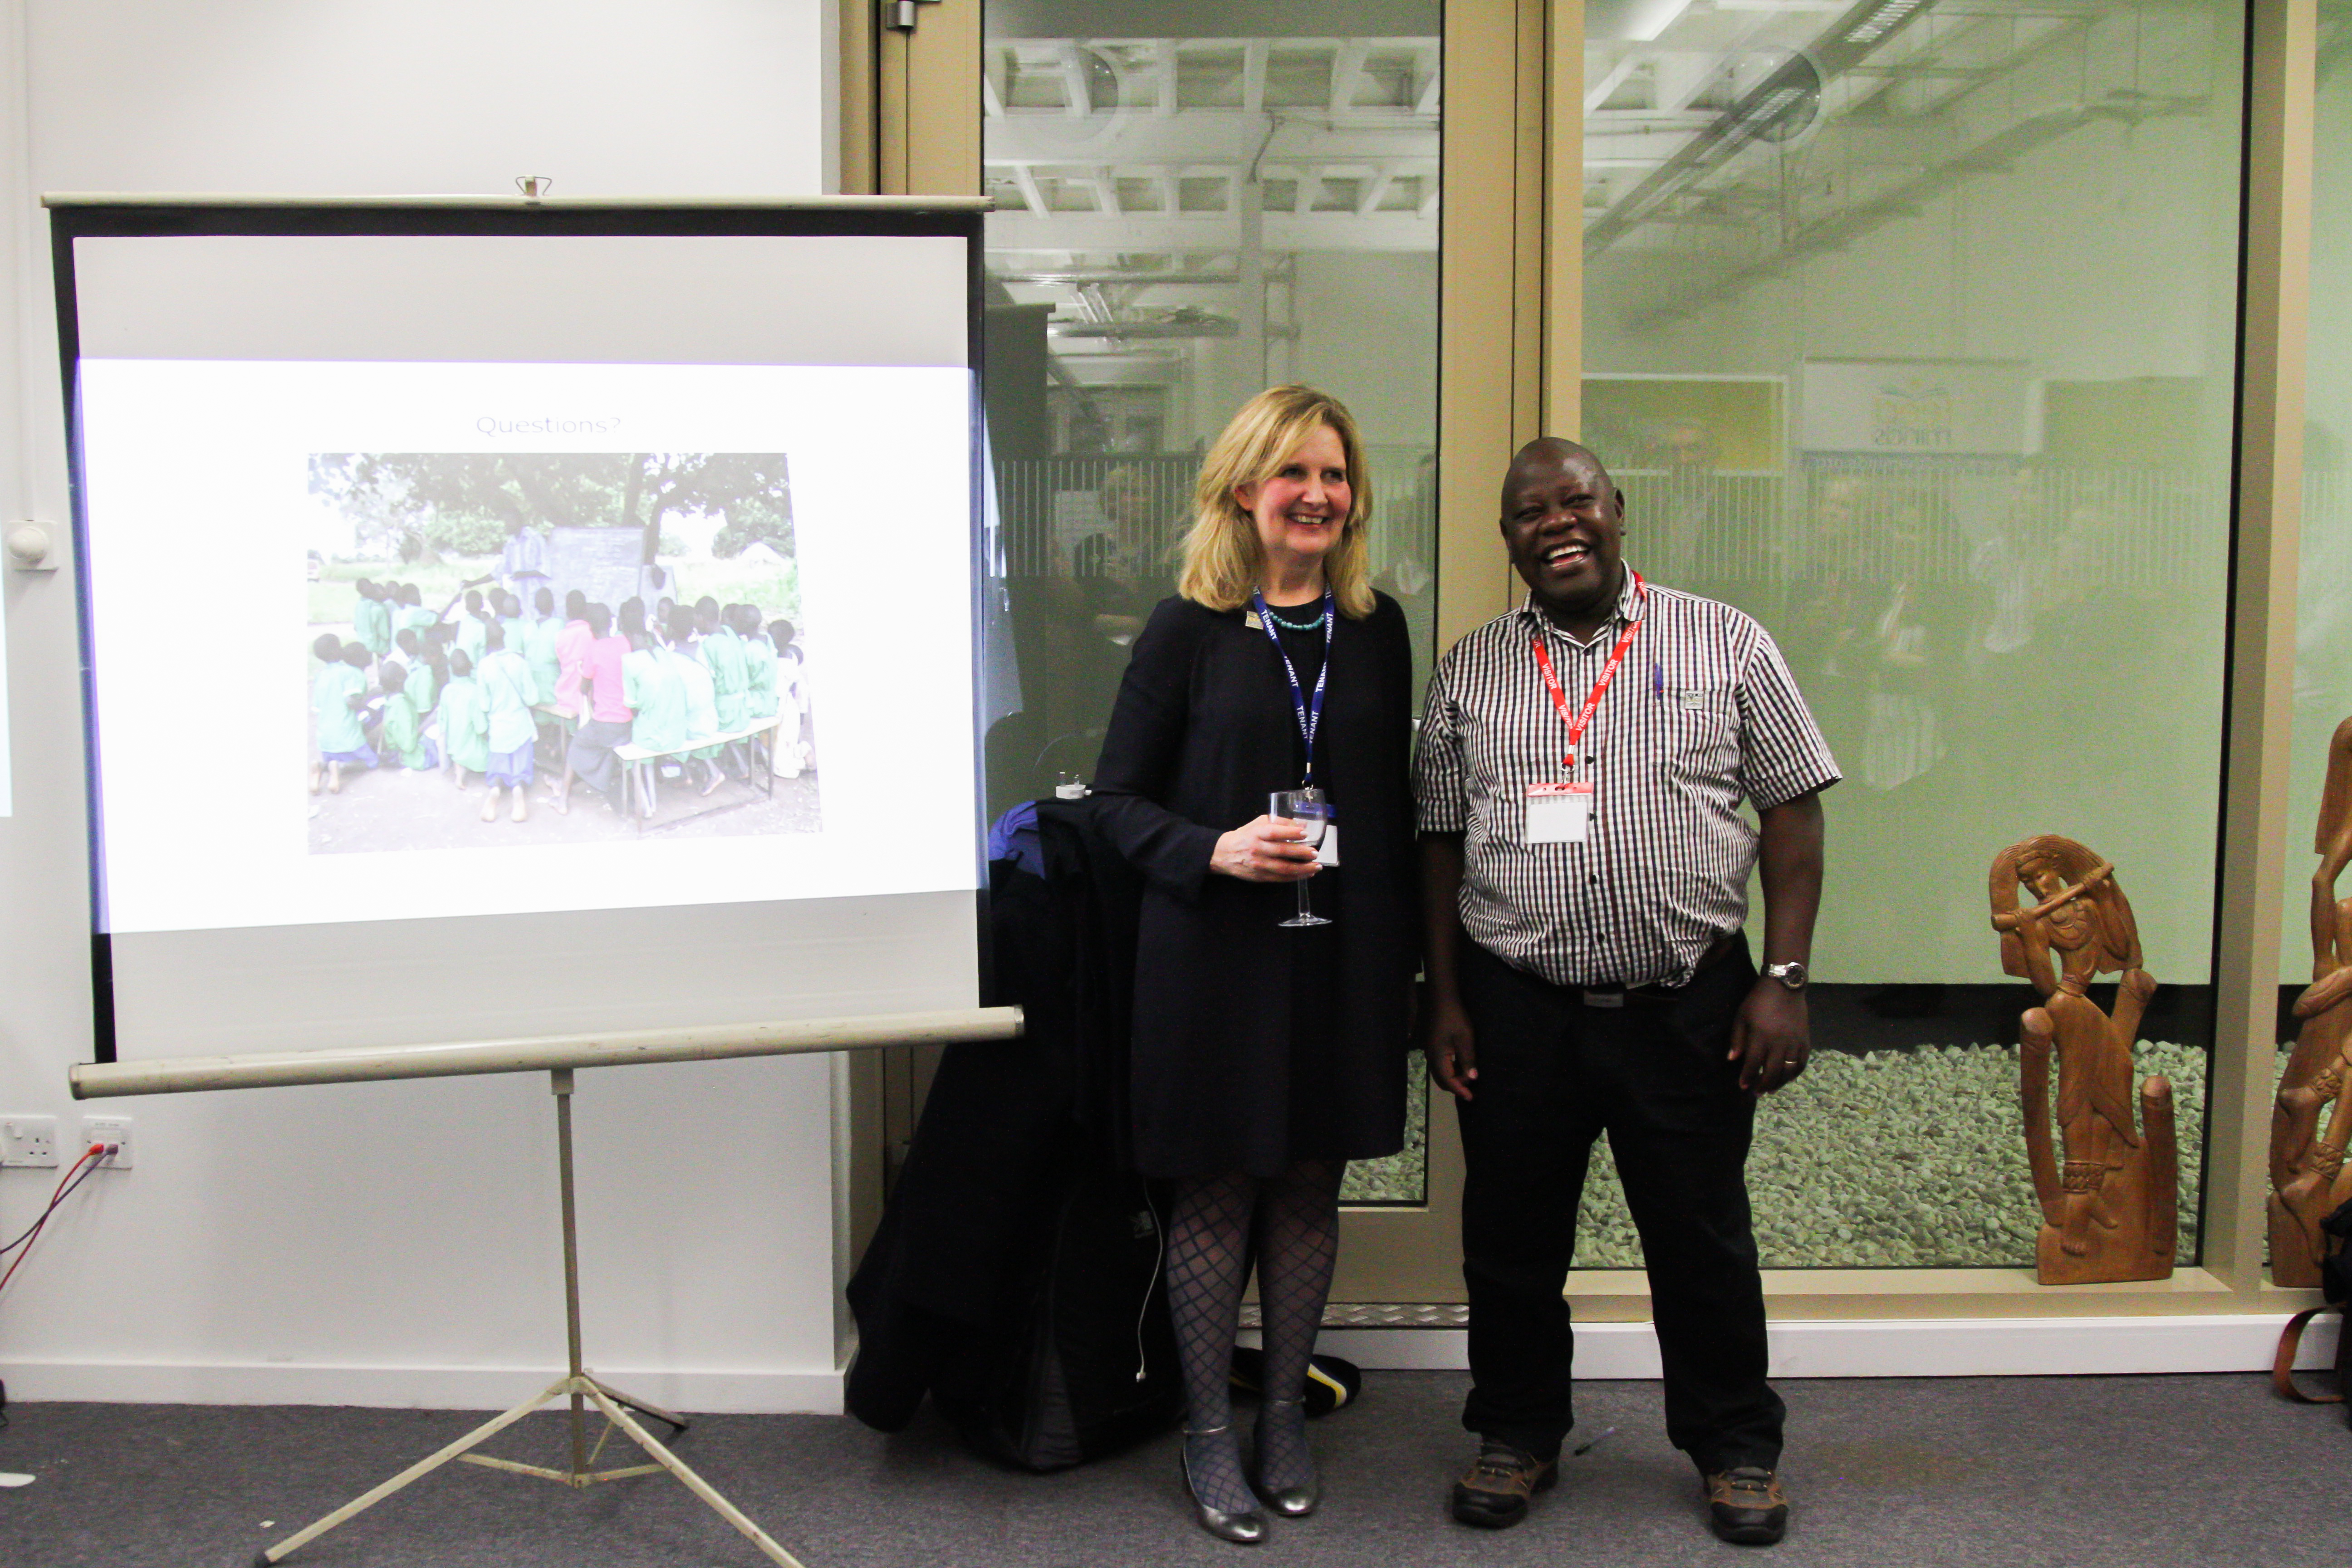 Josephine Carlsson (Director, Feed the Minds) and Benedict Male (Director, Voluntary Action for Development)